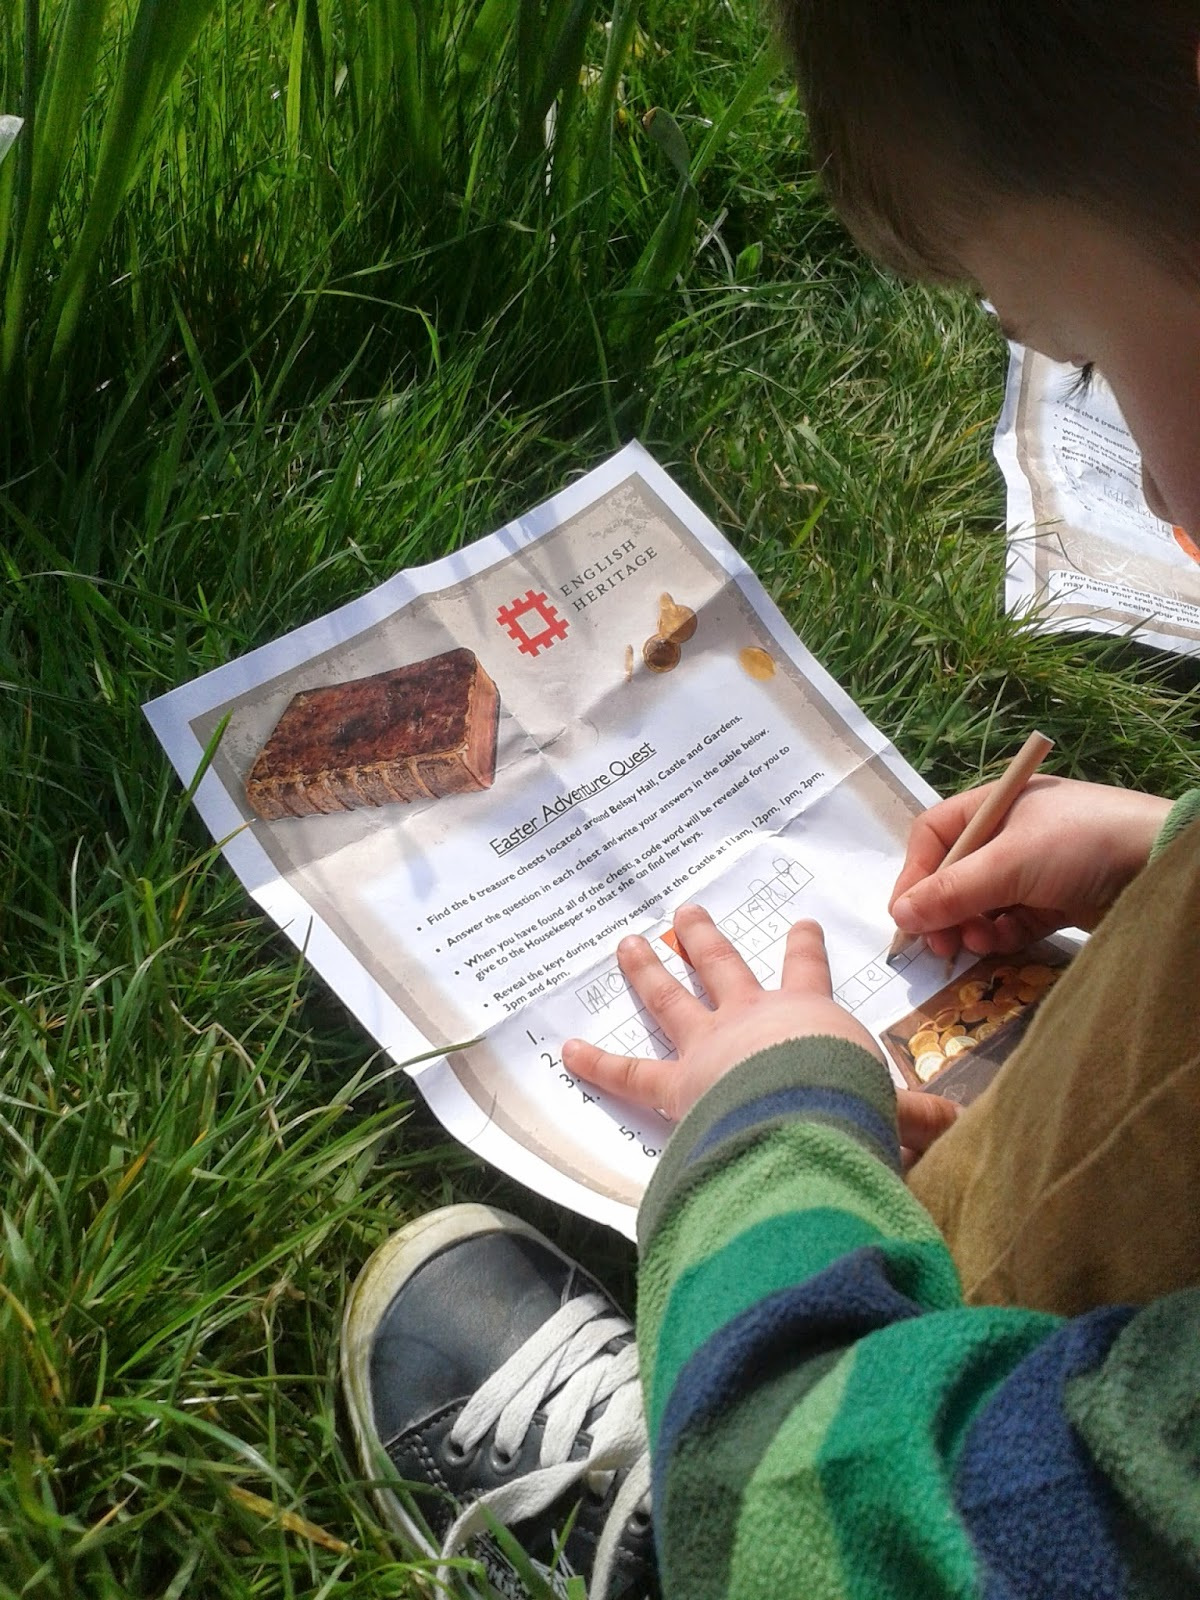 Activities for children at National Trust.